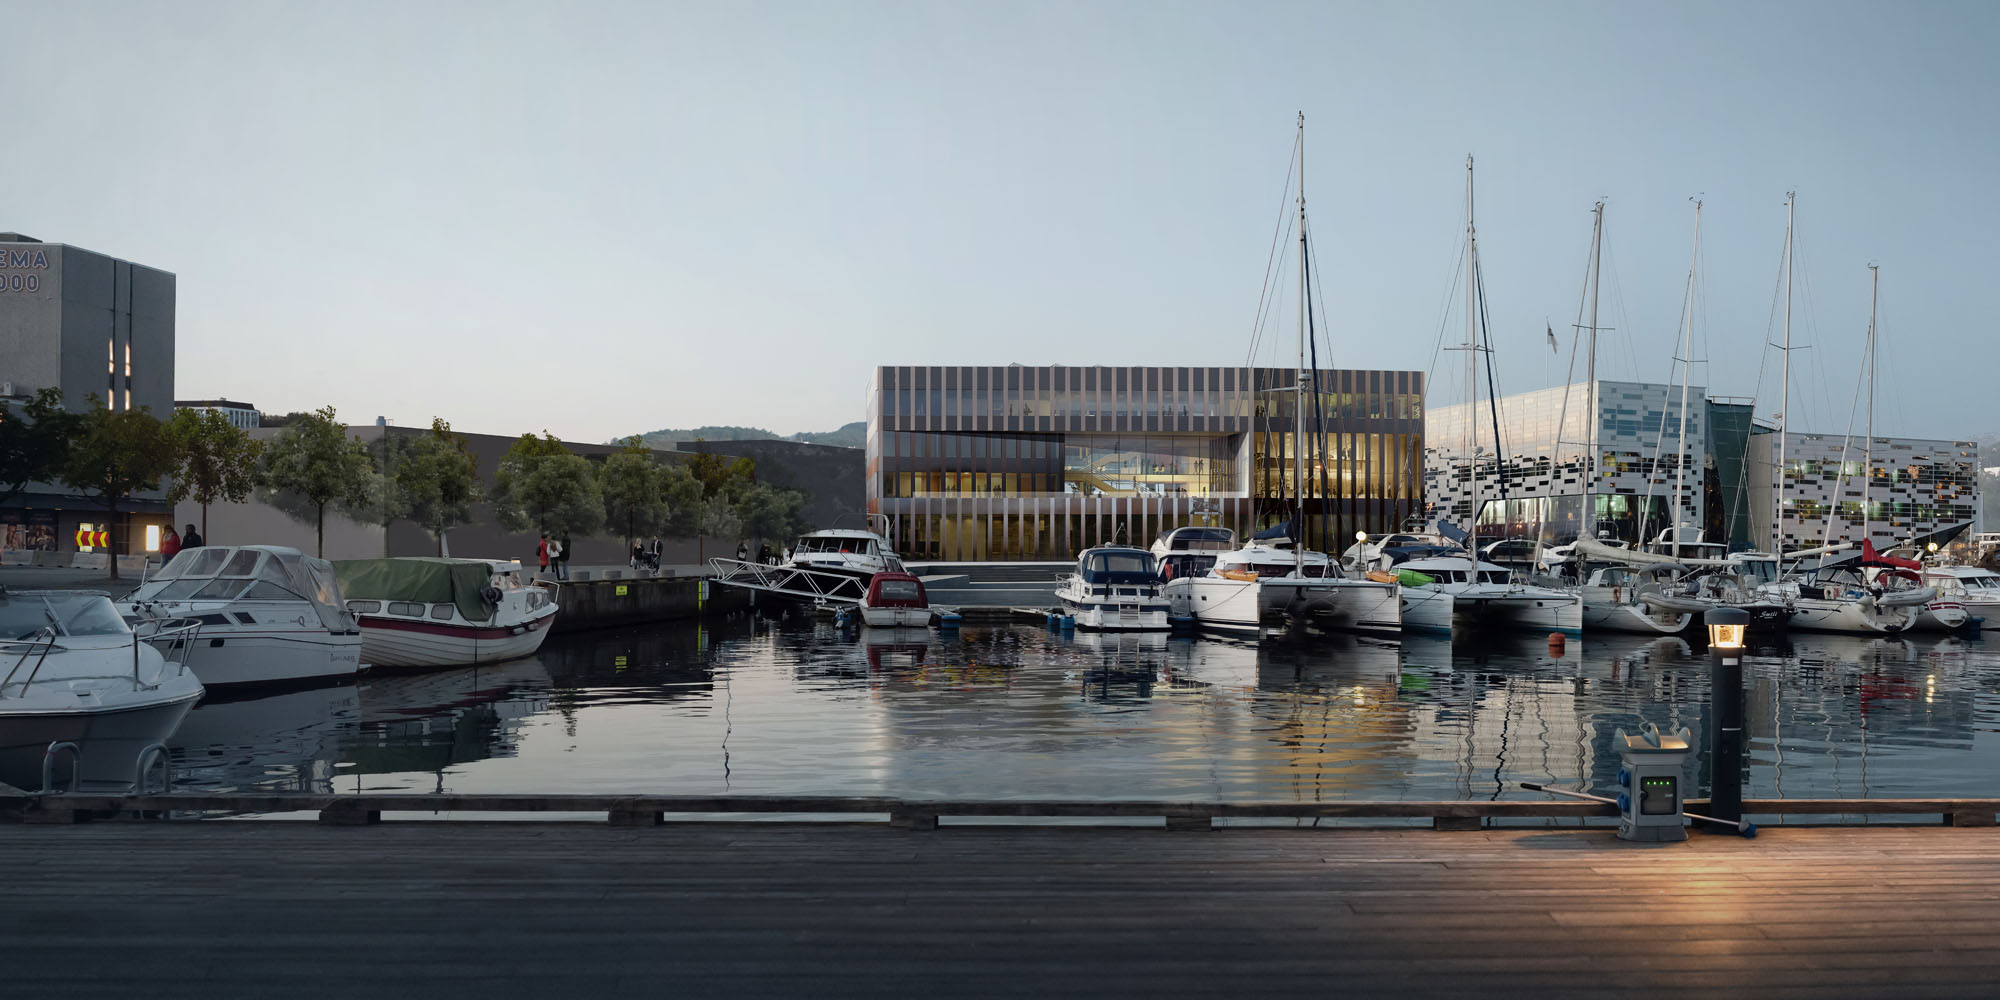 New Town Hall in Sandnes